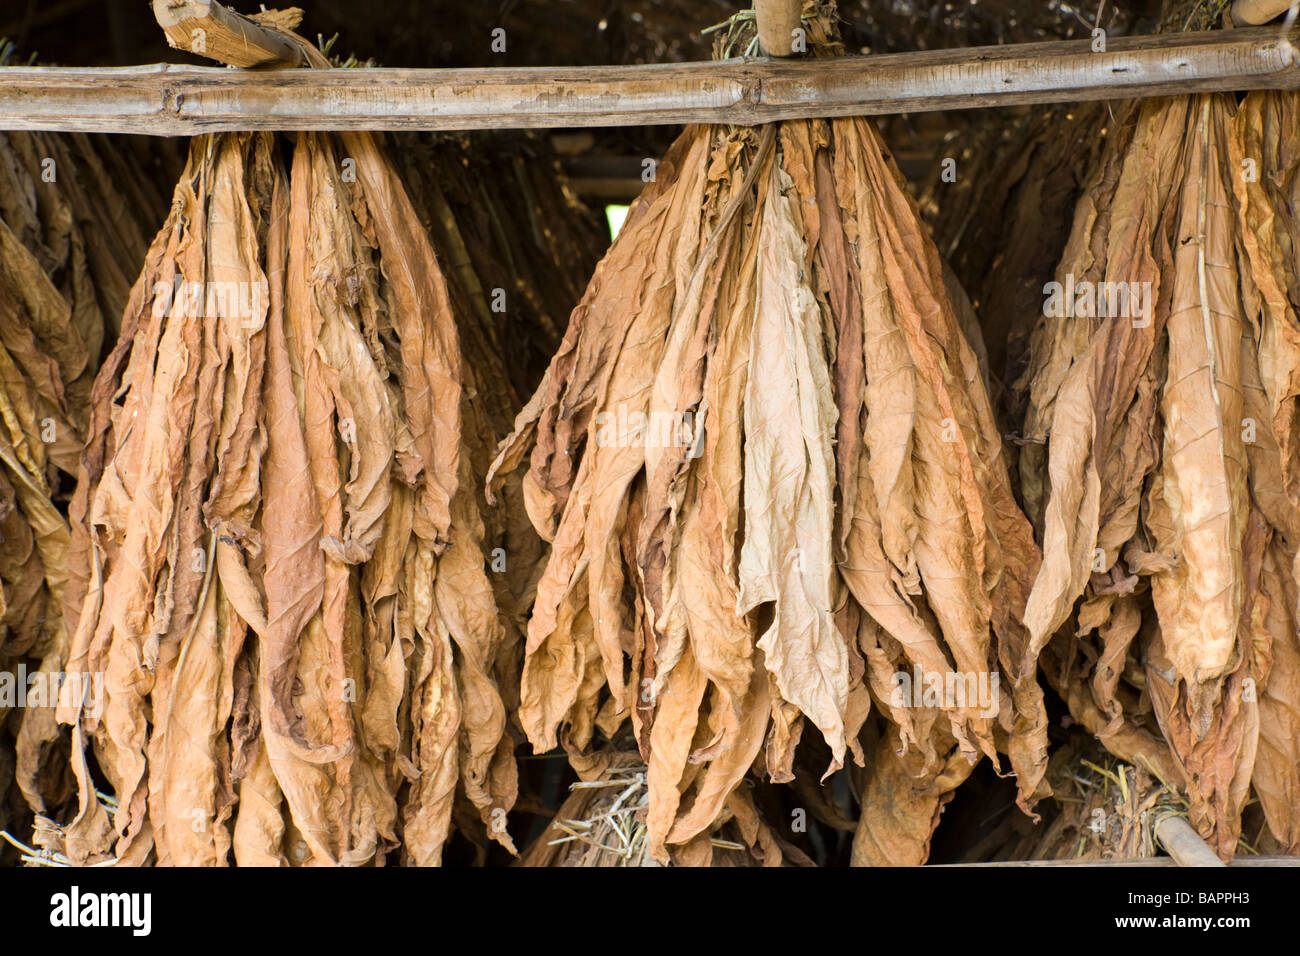 Tobacco drying in the village of Nyombe, Malawi, Africa - Stock Image